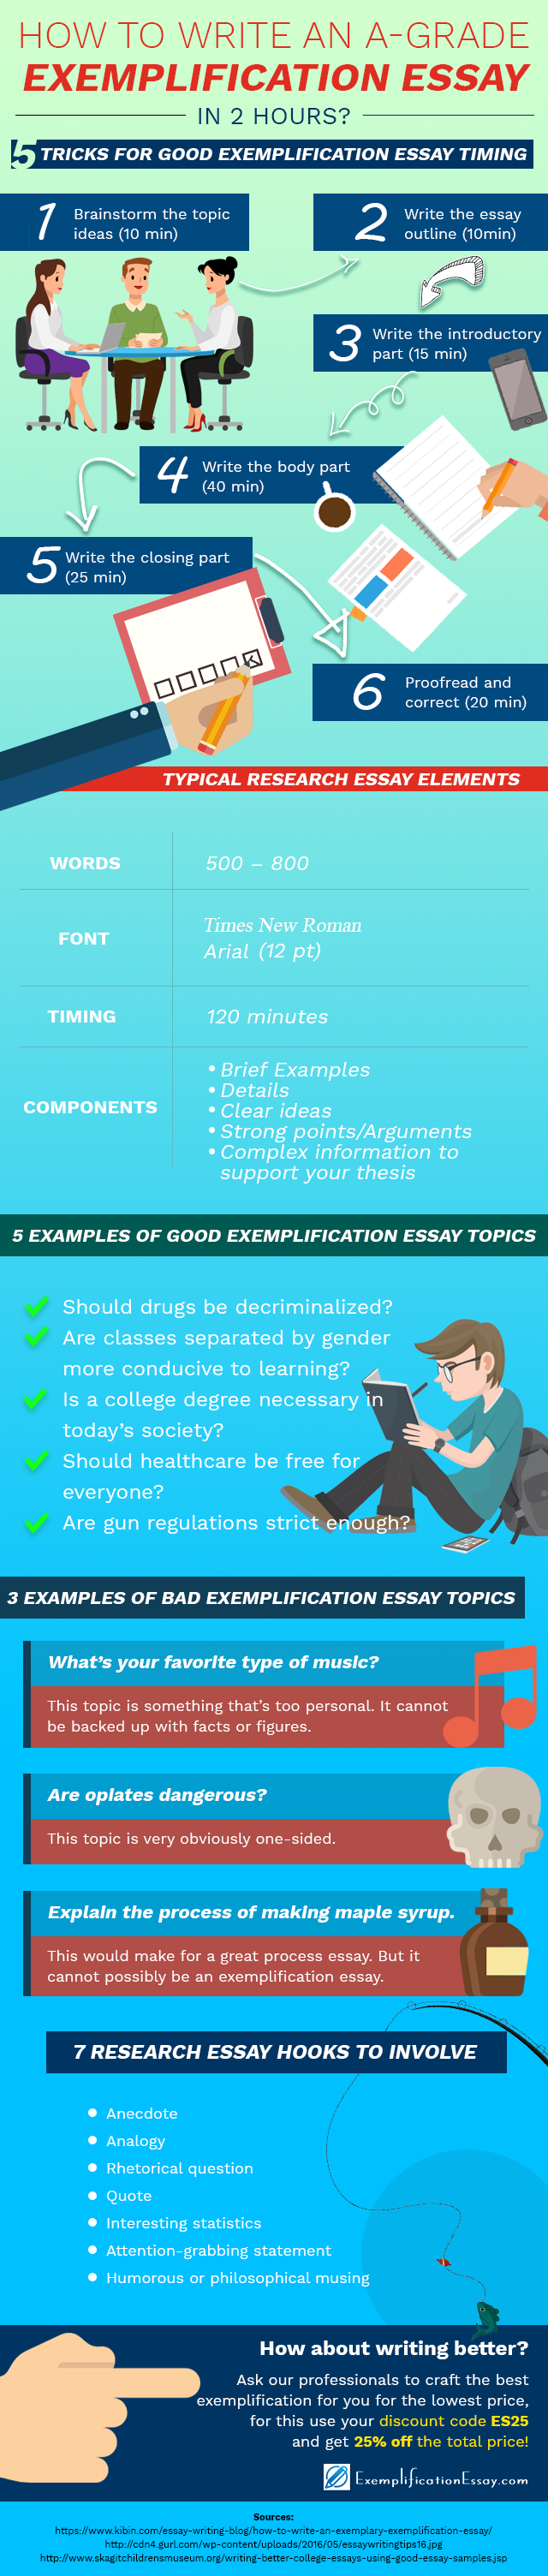 Exemplification Essay Examples With Topic Ideas